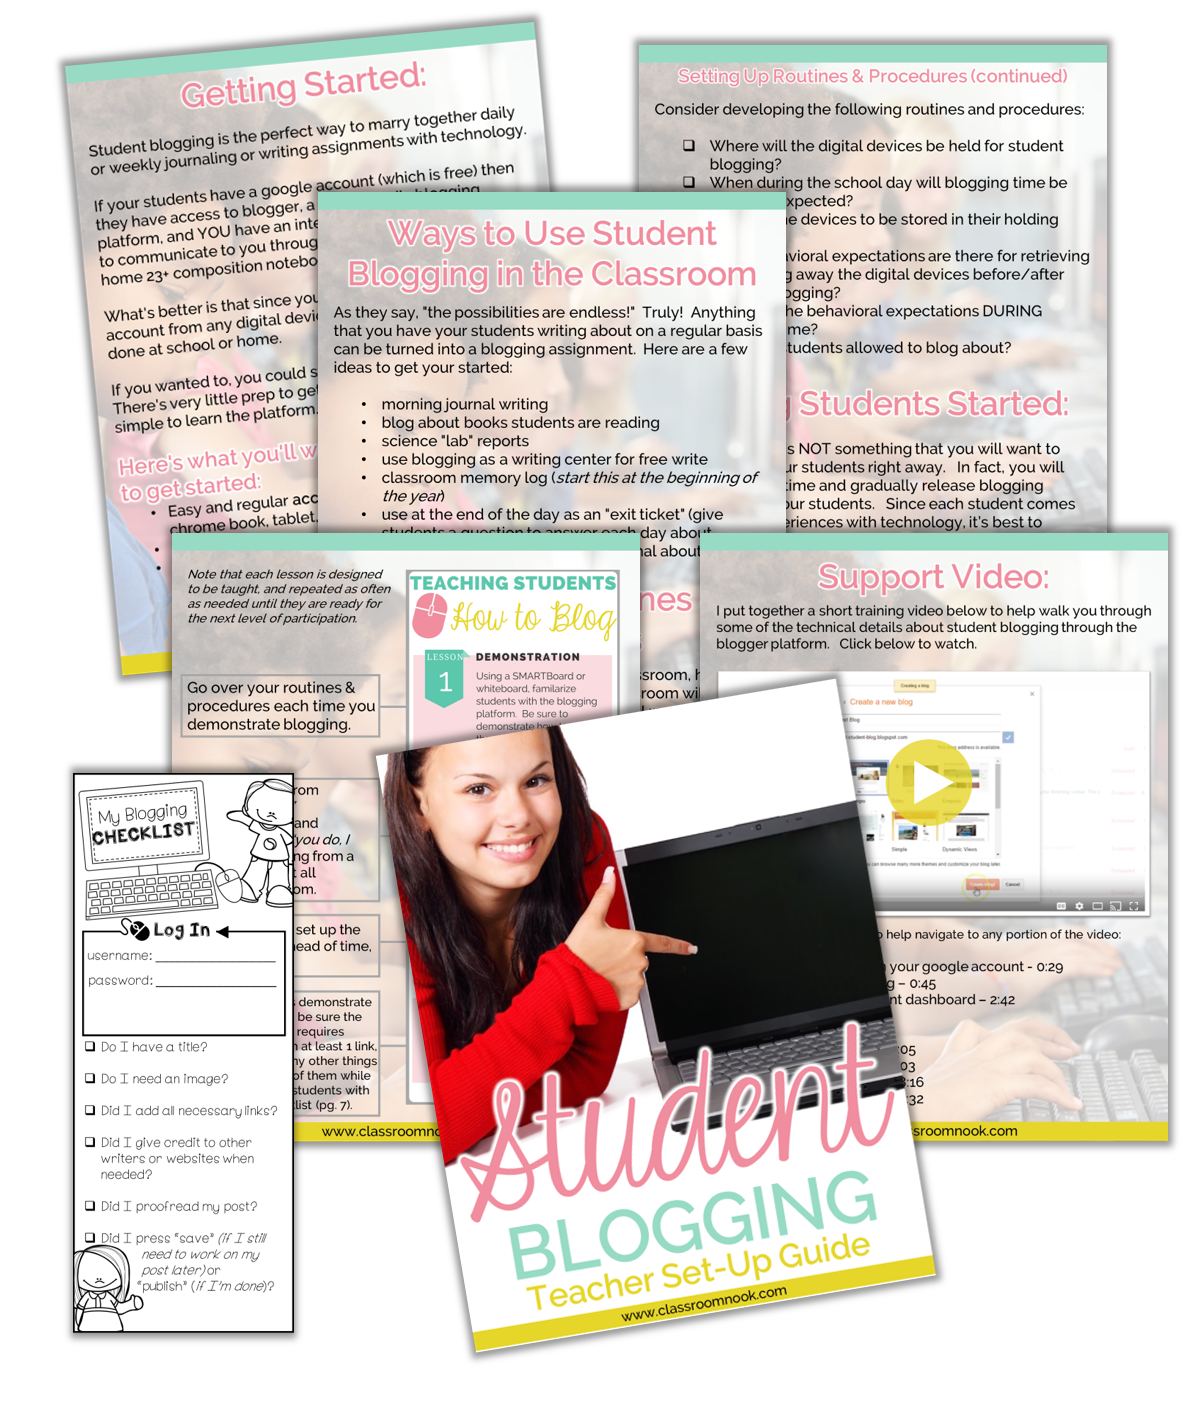 Download this FREE teacher guide to using student blogging in the classroom